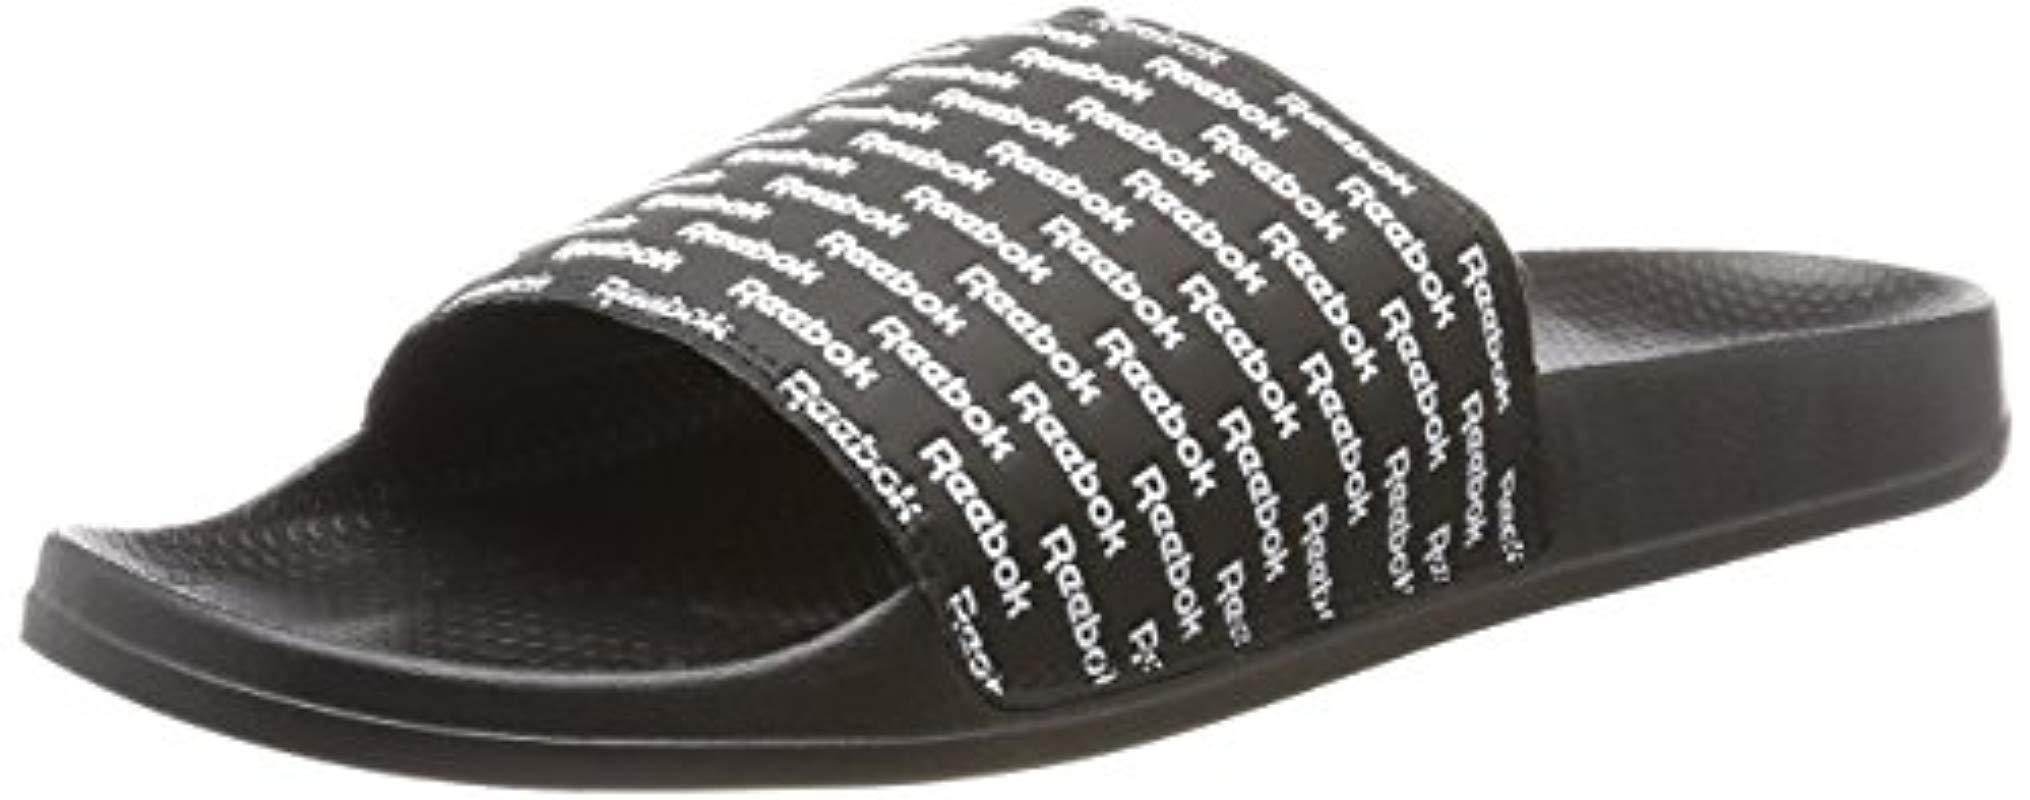 d7213a311b24 Reebok  s Classic Slide Beach And Pool Shoes in Black for Men - Lyst